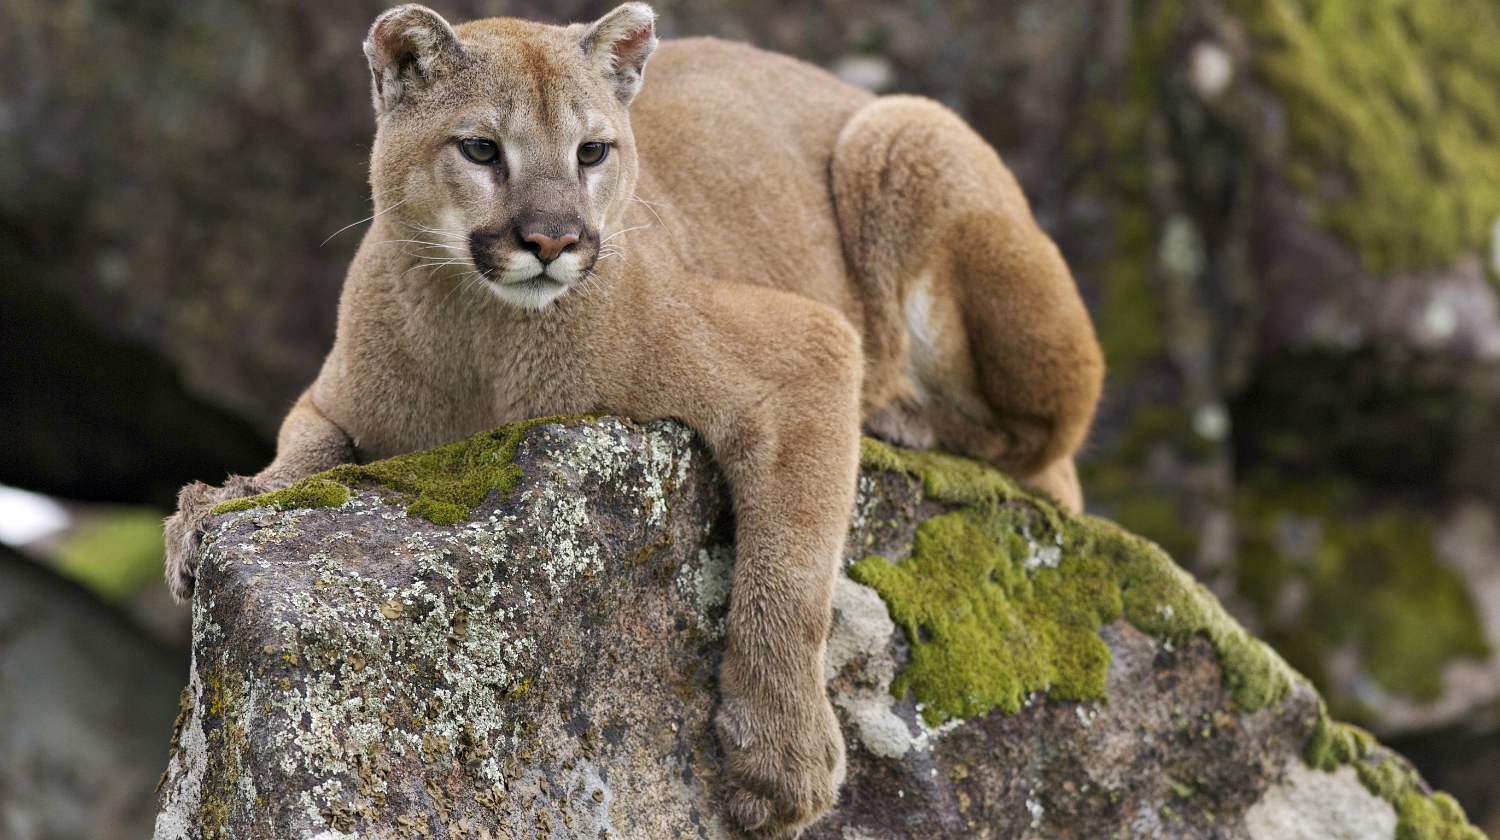 Feature | Mountain lion on moss covered rocks during spring time | Remarkable Facts About Mountain Lions